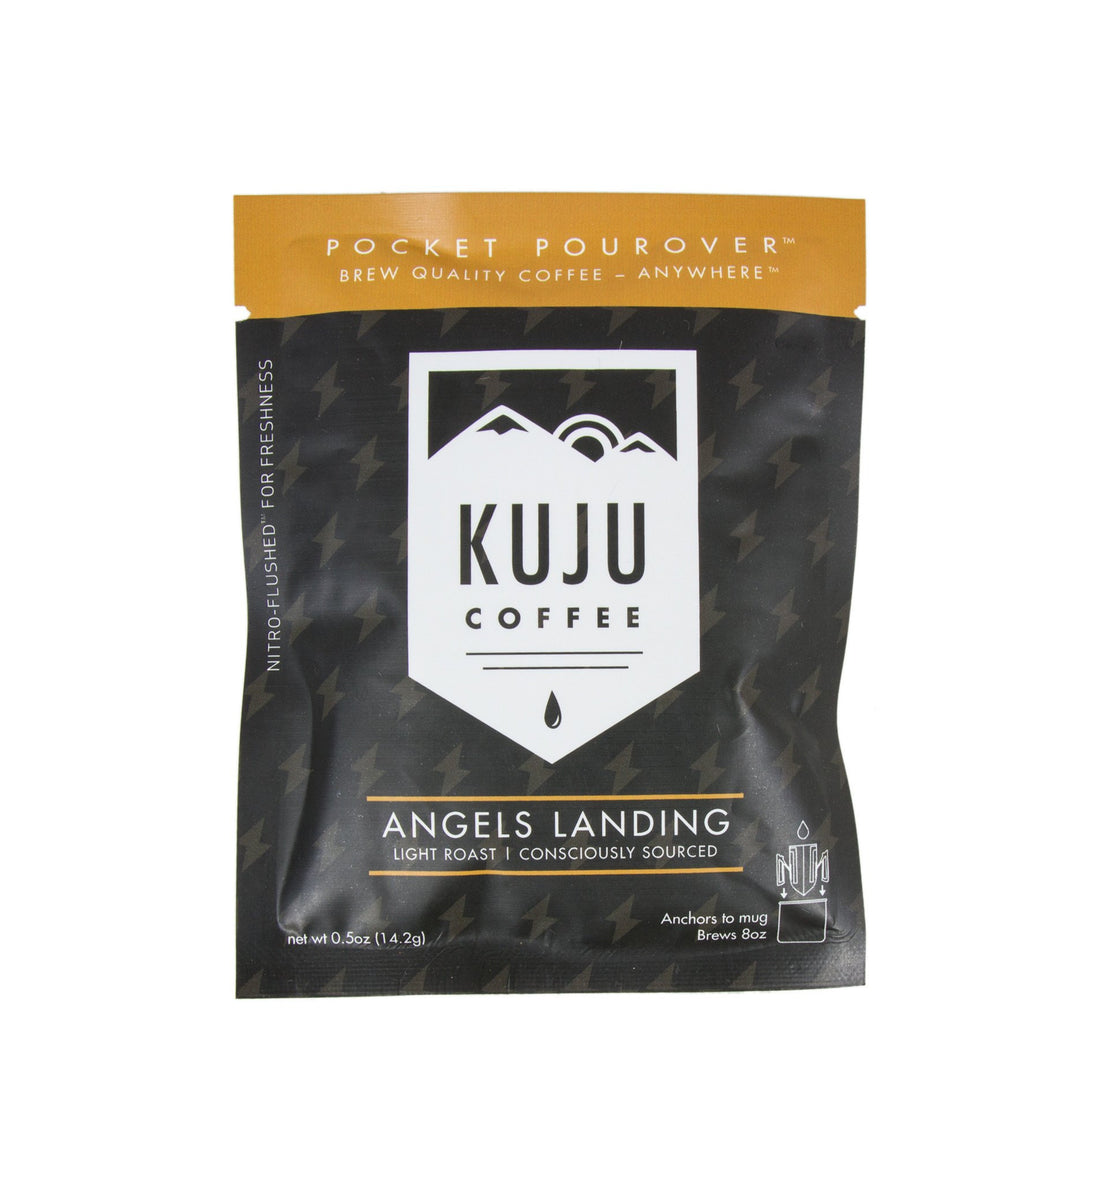 Kuju Coffee Pocket Pourover, Angels Landing - Food: Coffee - Iron and Resin